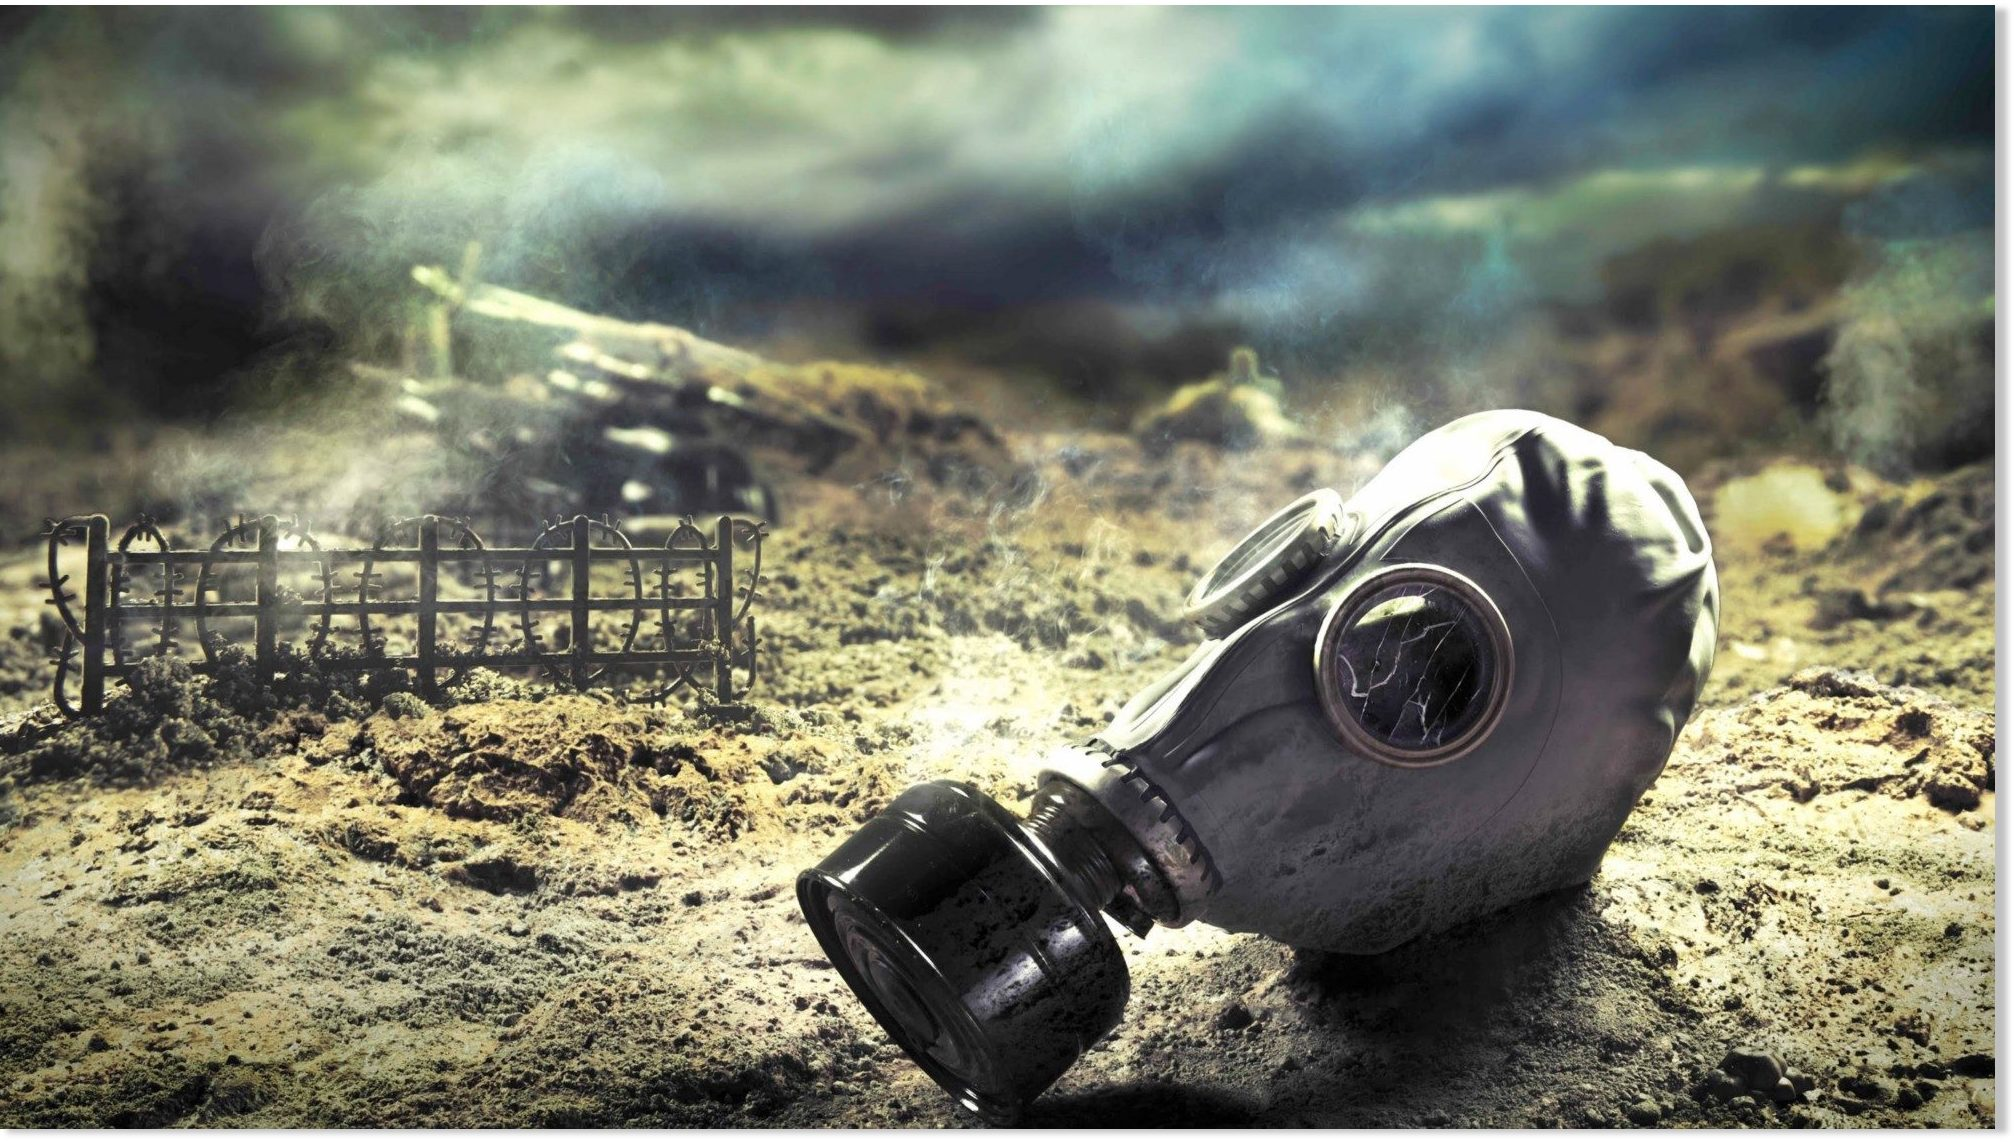 the threat biological warfare and terrorism represents to the united states The use of wmd against civilian targets represents the most serious potential international and domestic terrorism threat facing the united states today and provides a glimpse into emerging.